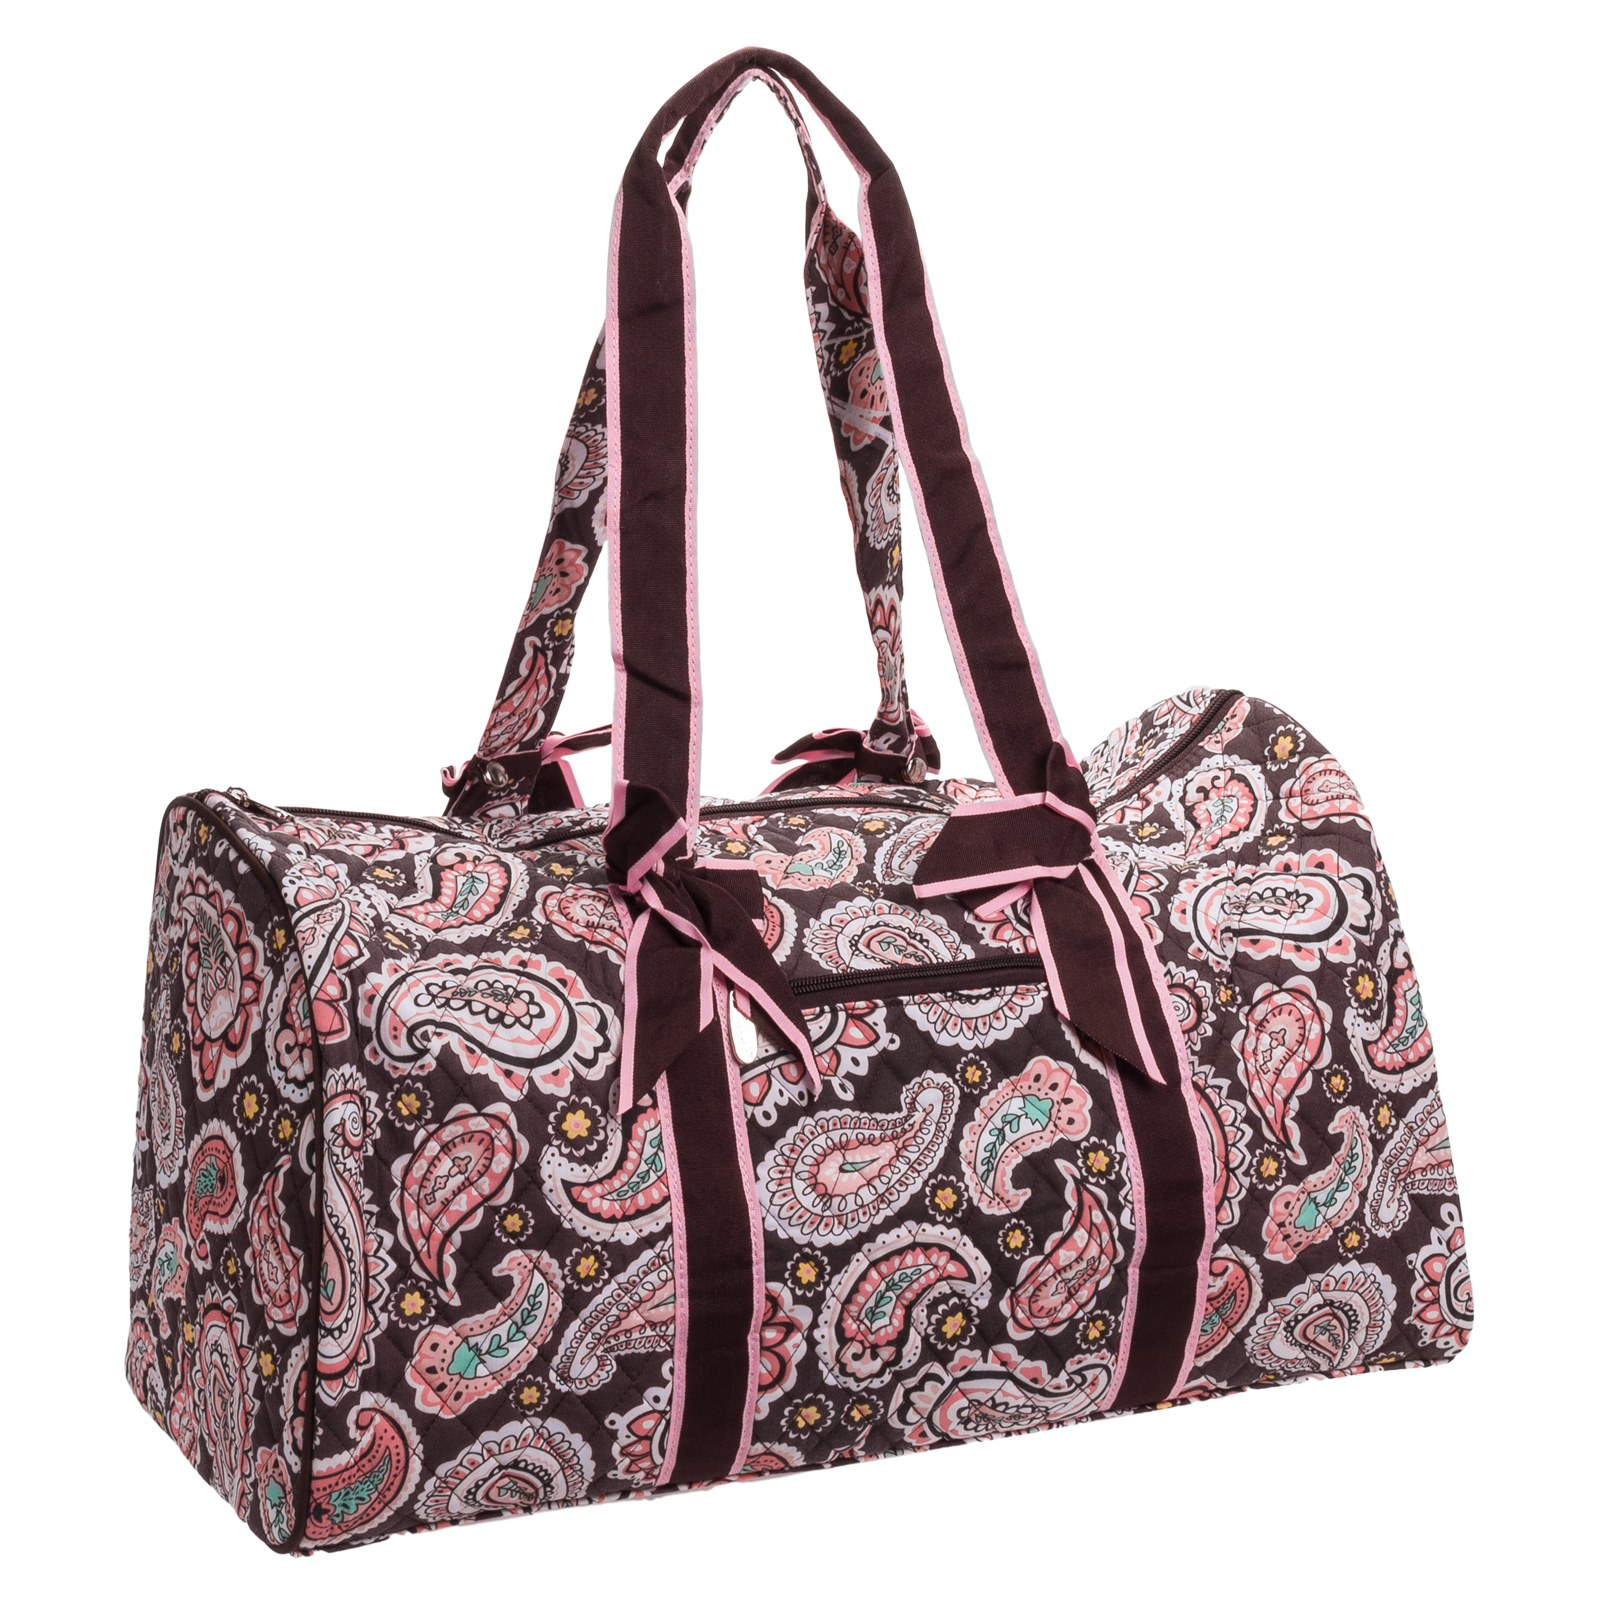 belvah quilted brown paisley large duffle bag travel